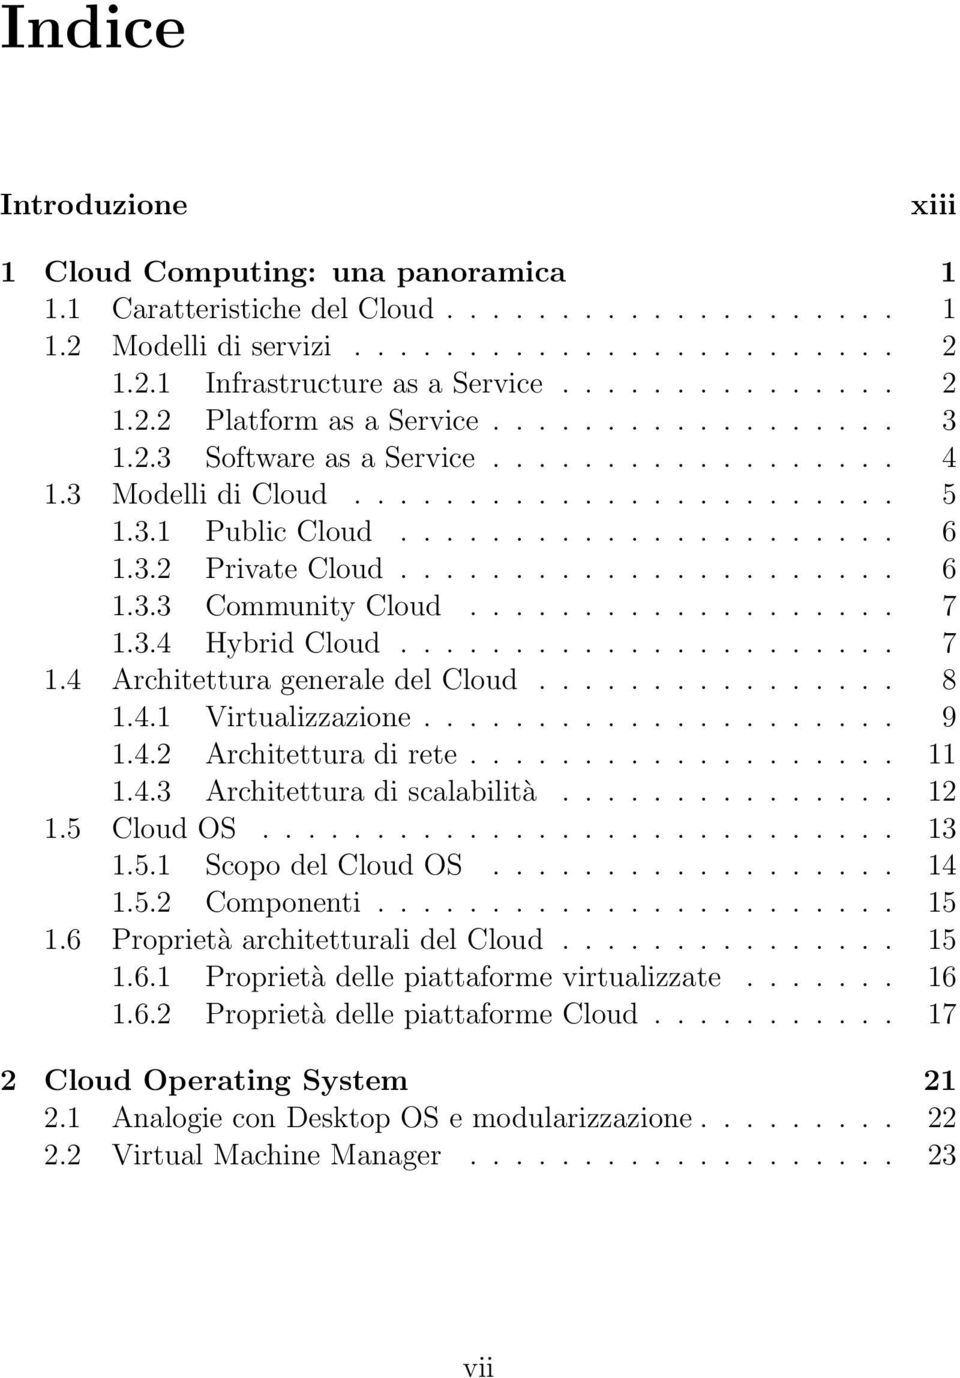 3.2 Private Cloud...................... 6 1.3.3 Community Cloud................... 7 1.3.4 Hybrid Cloud...................... 7 1.4 Architettura generale del Cloud................ 8 1.4.1 Virtualizzazione.